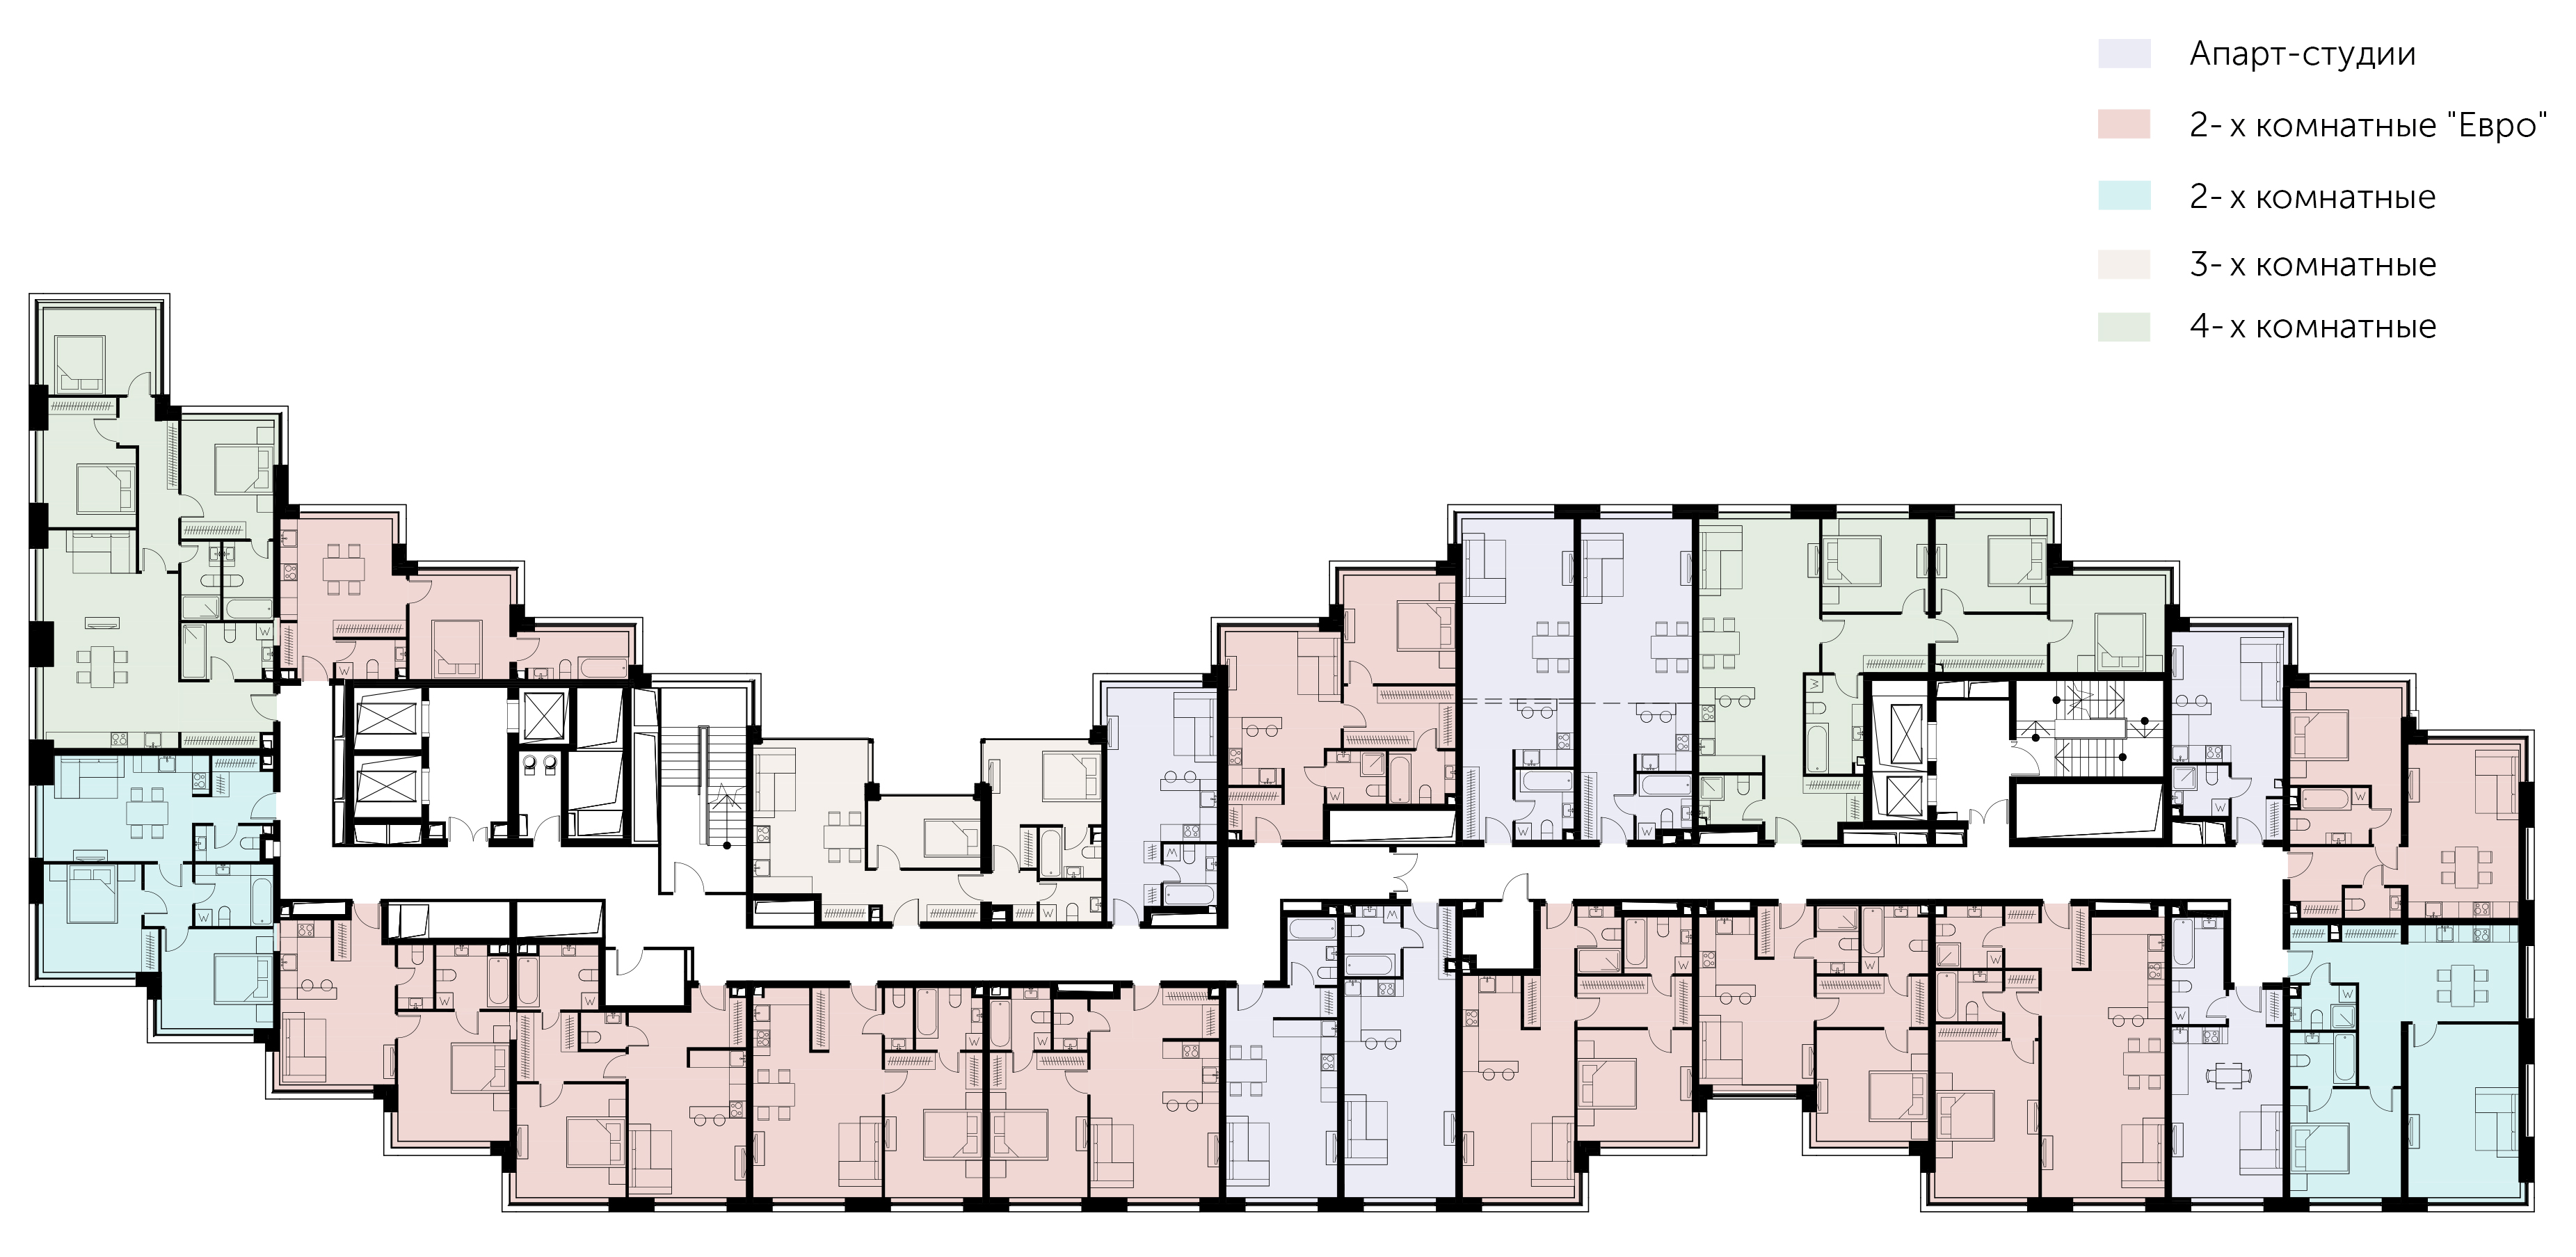 /source/1054_Sakharova/1054_5th floor plan.jpg